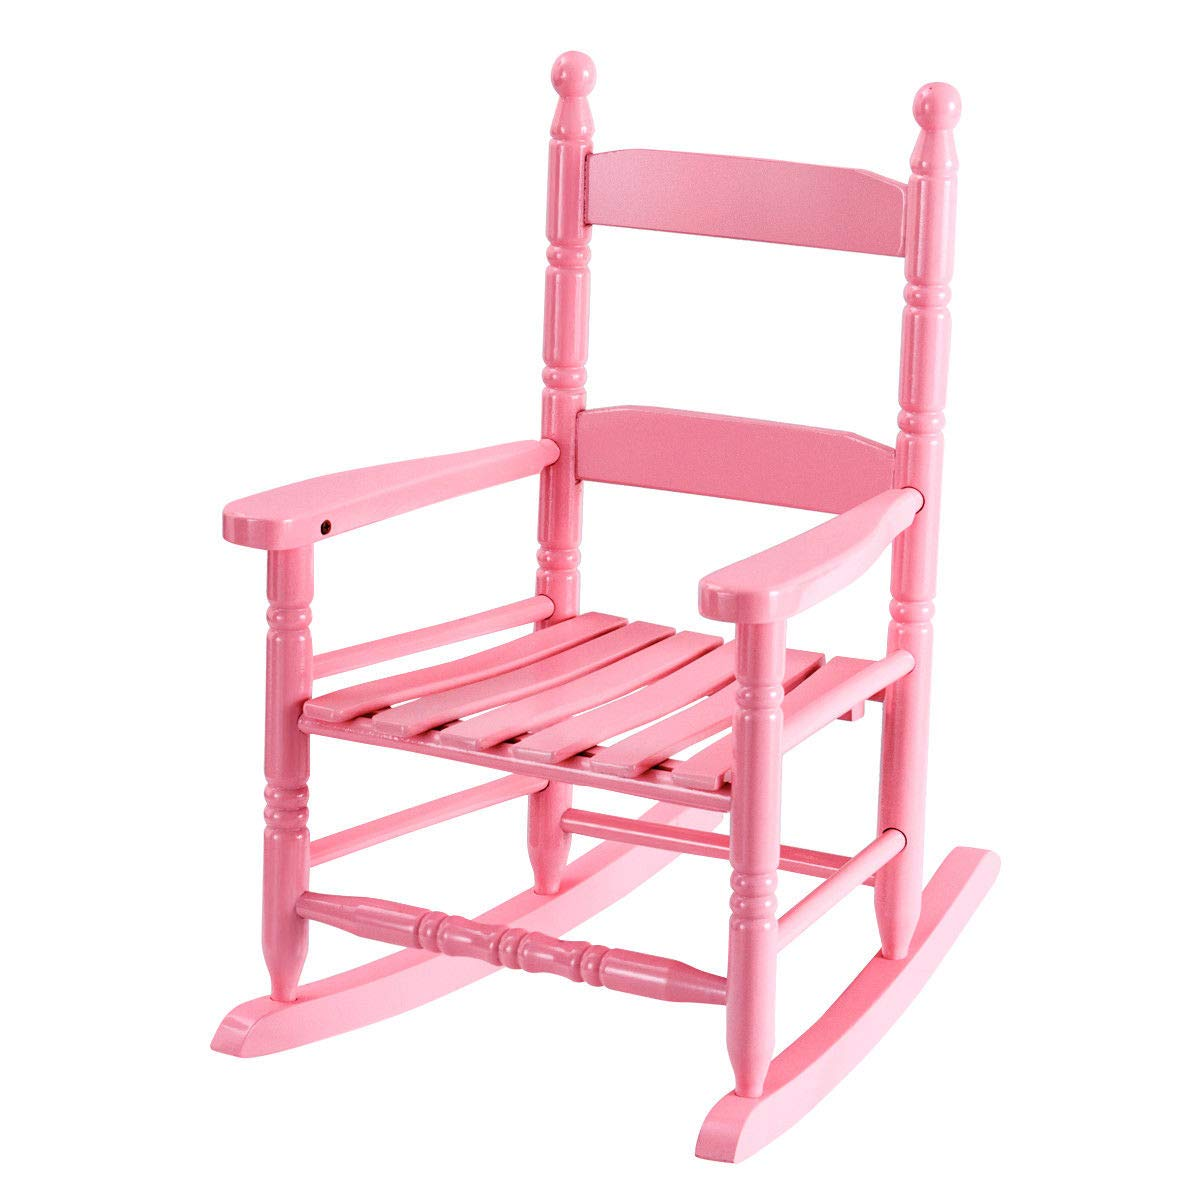 Child Rocking Chair Wooden Rocker for Aged 56-96 Months Pink by BWM.Co